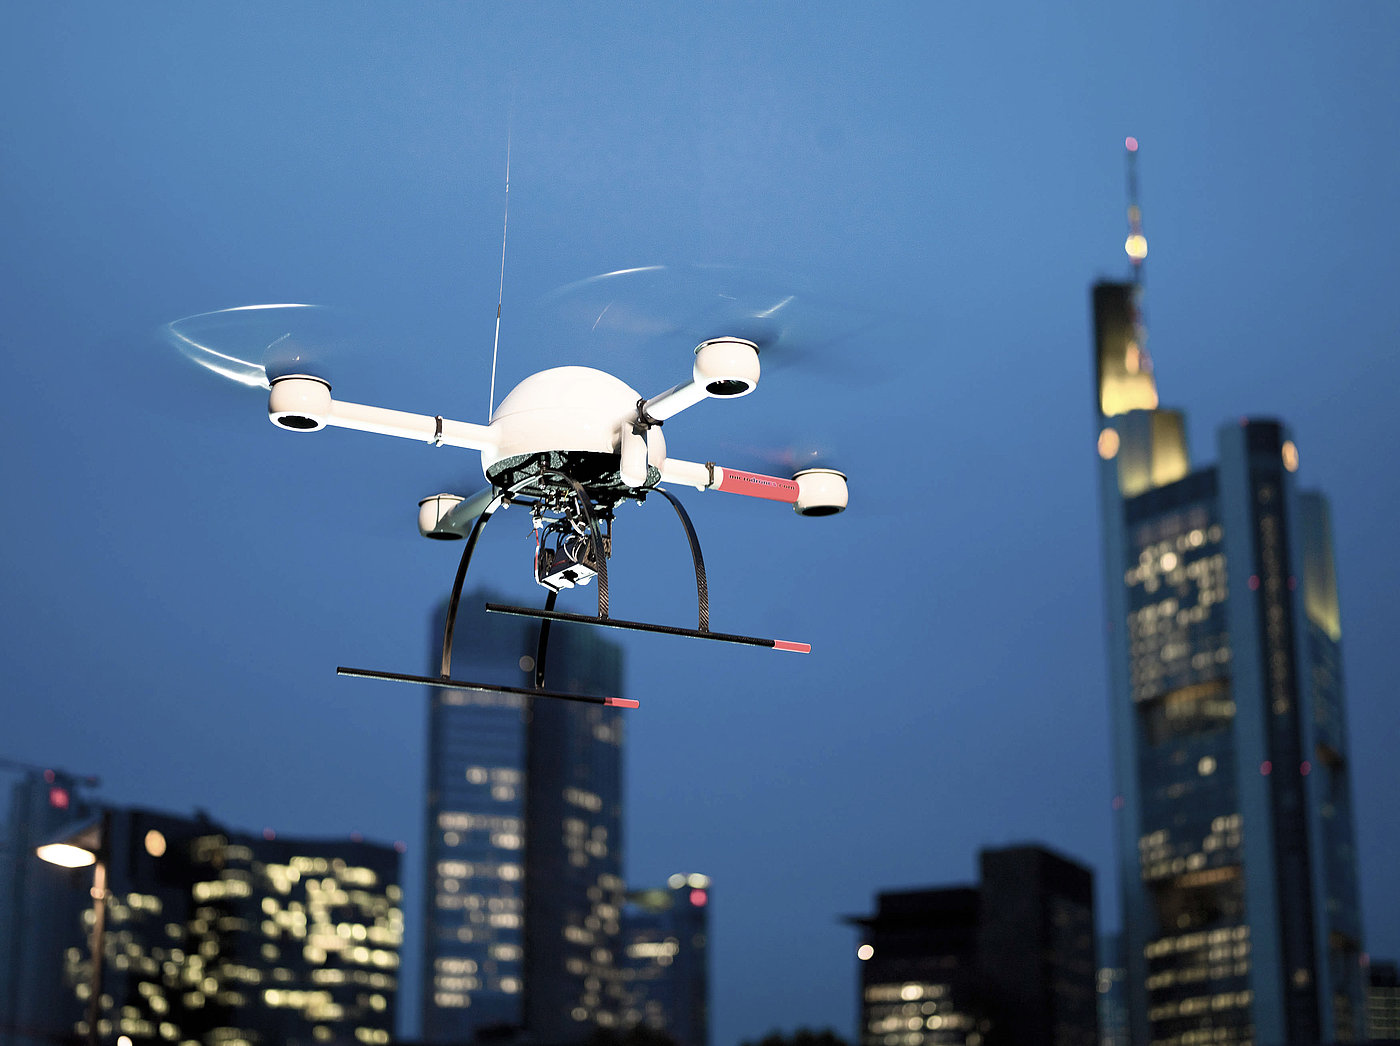 Microdrones md4-1000 during a surveillance flight, seen against the night skyline of Frankfurt, Germany